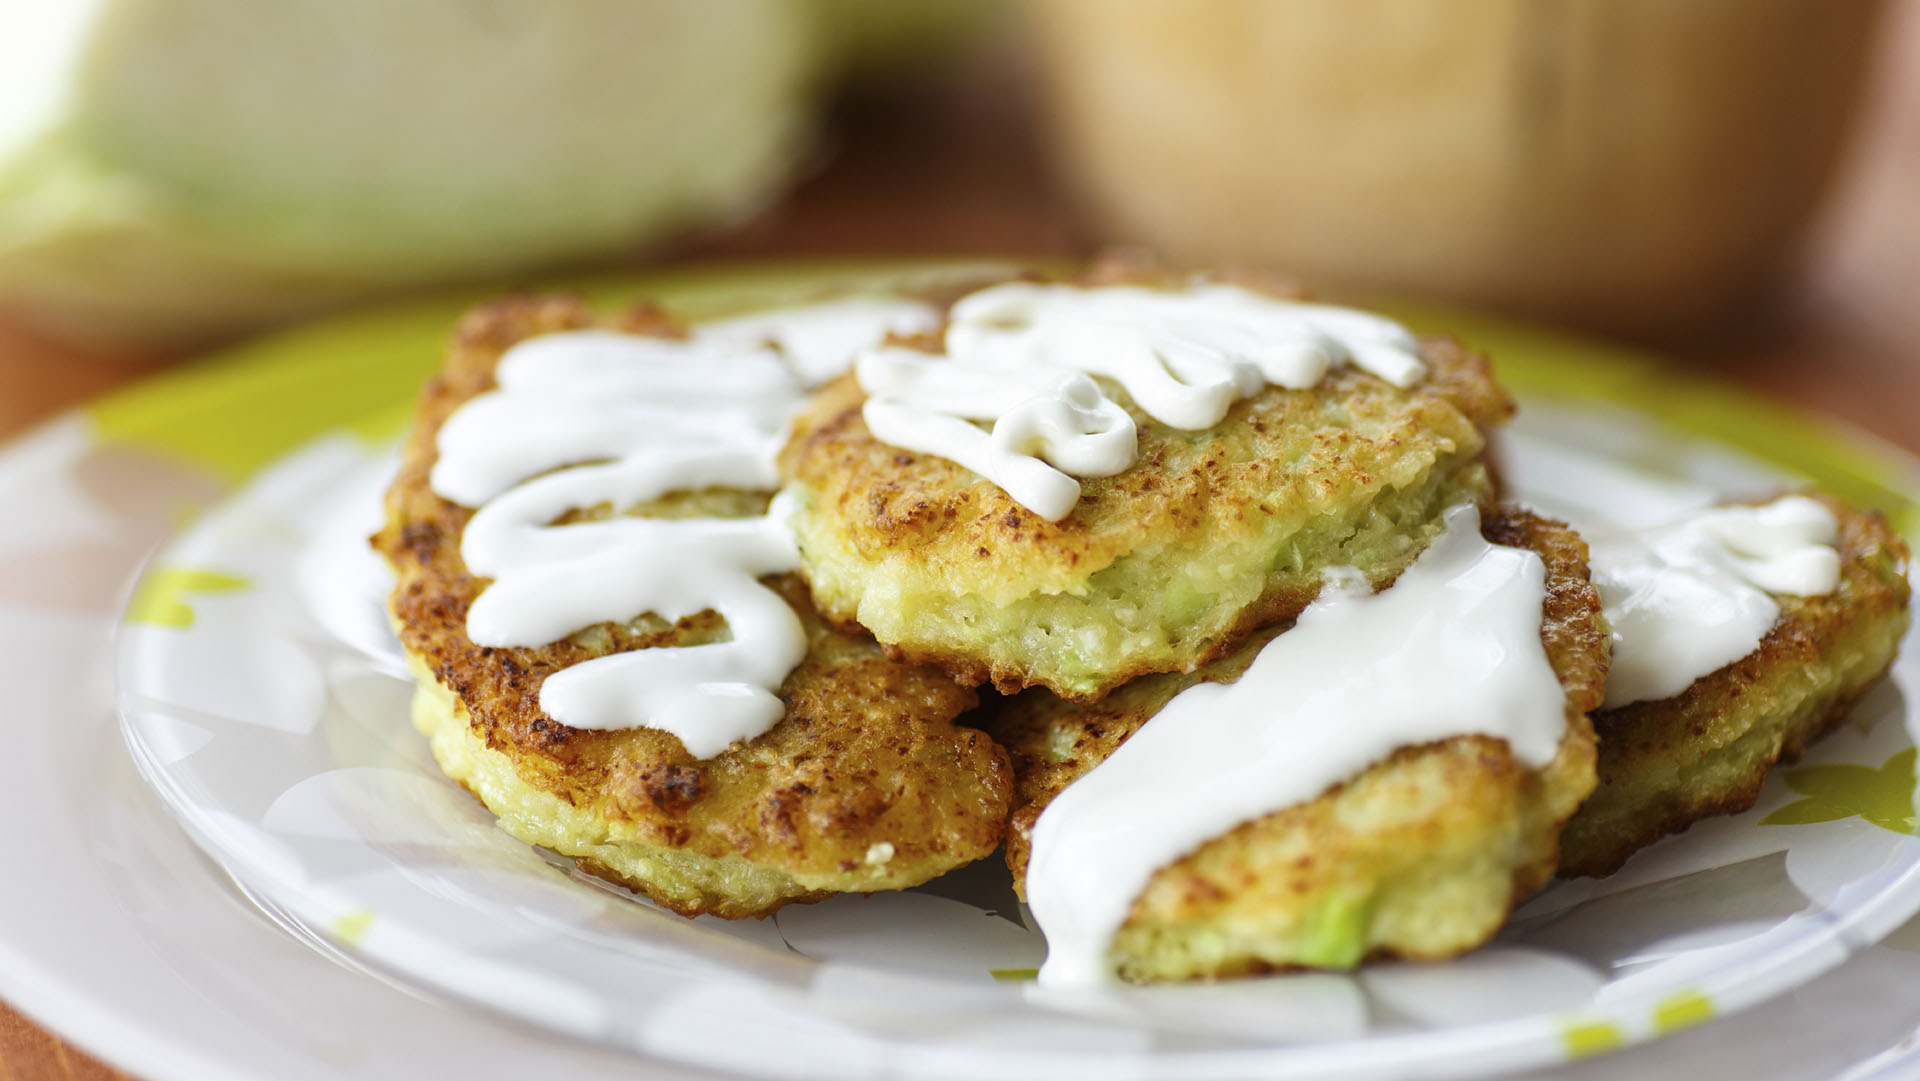 cabbage pancakes with sour cream on a plate